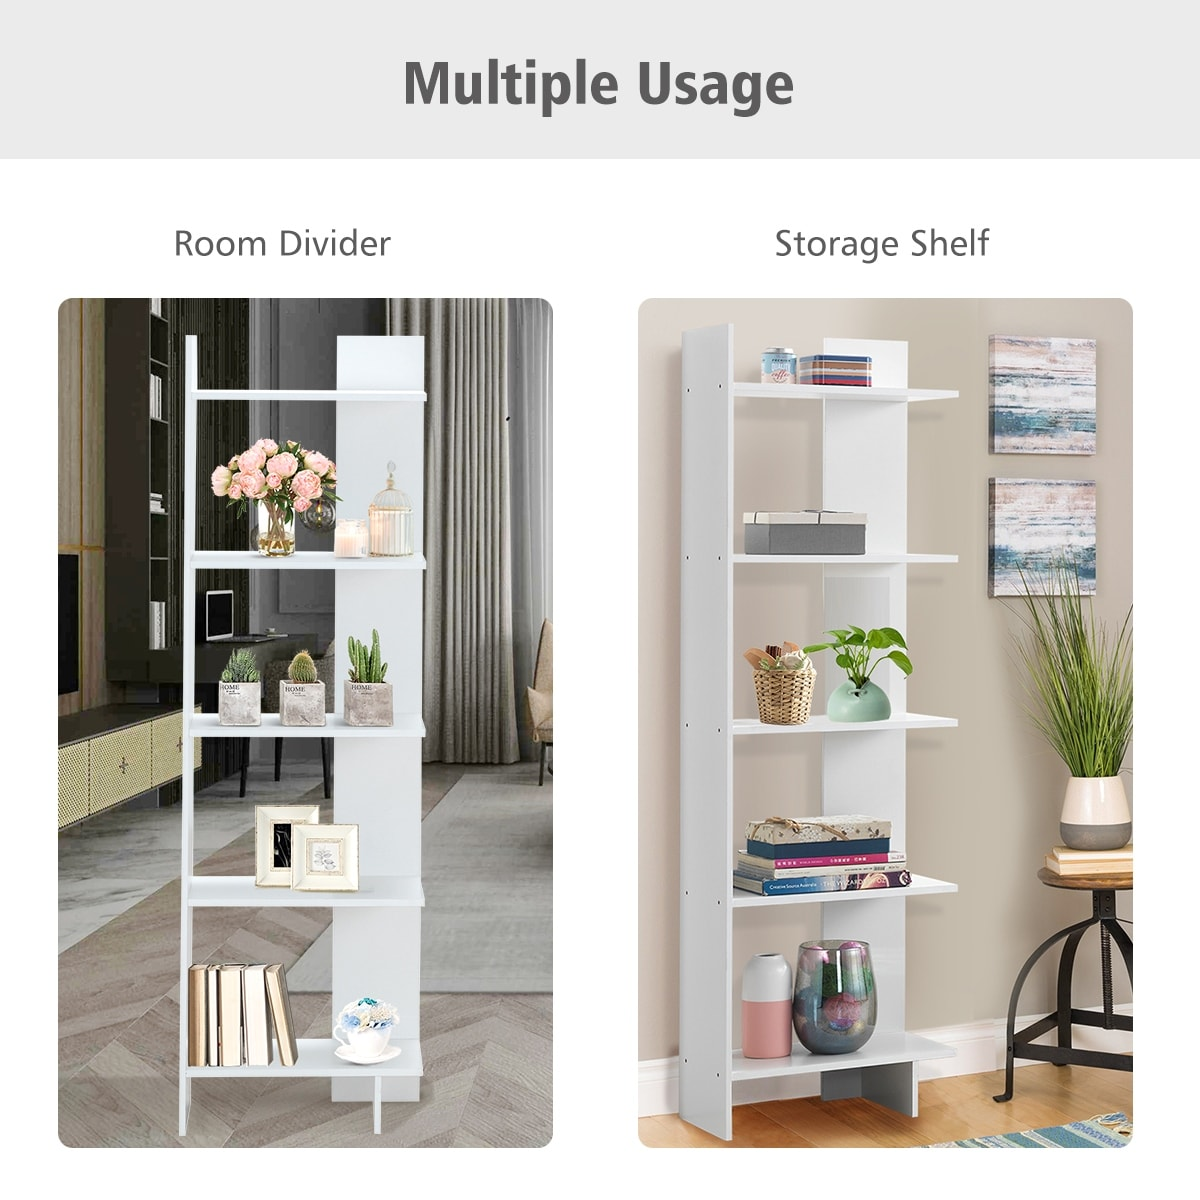 Costway 5 Tier Bookcase Storage Open Shelves Display Unit Room Divider